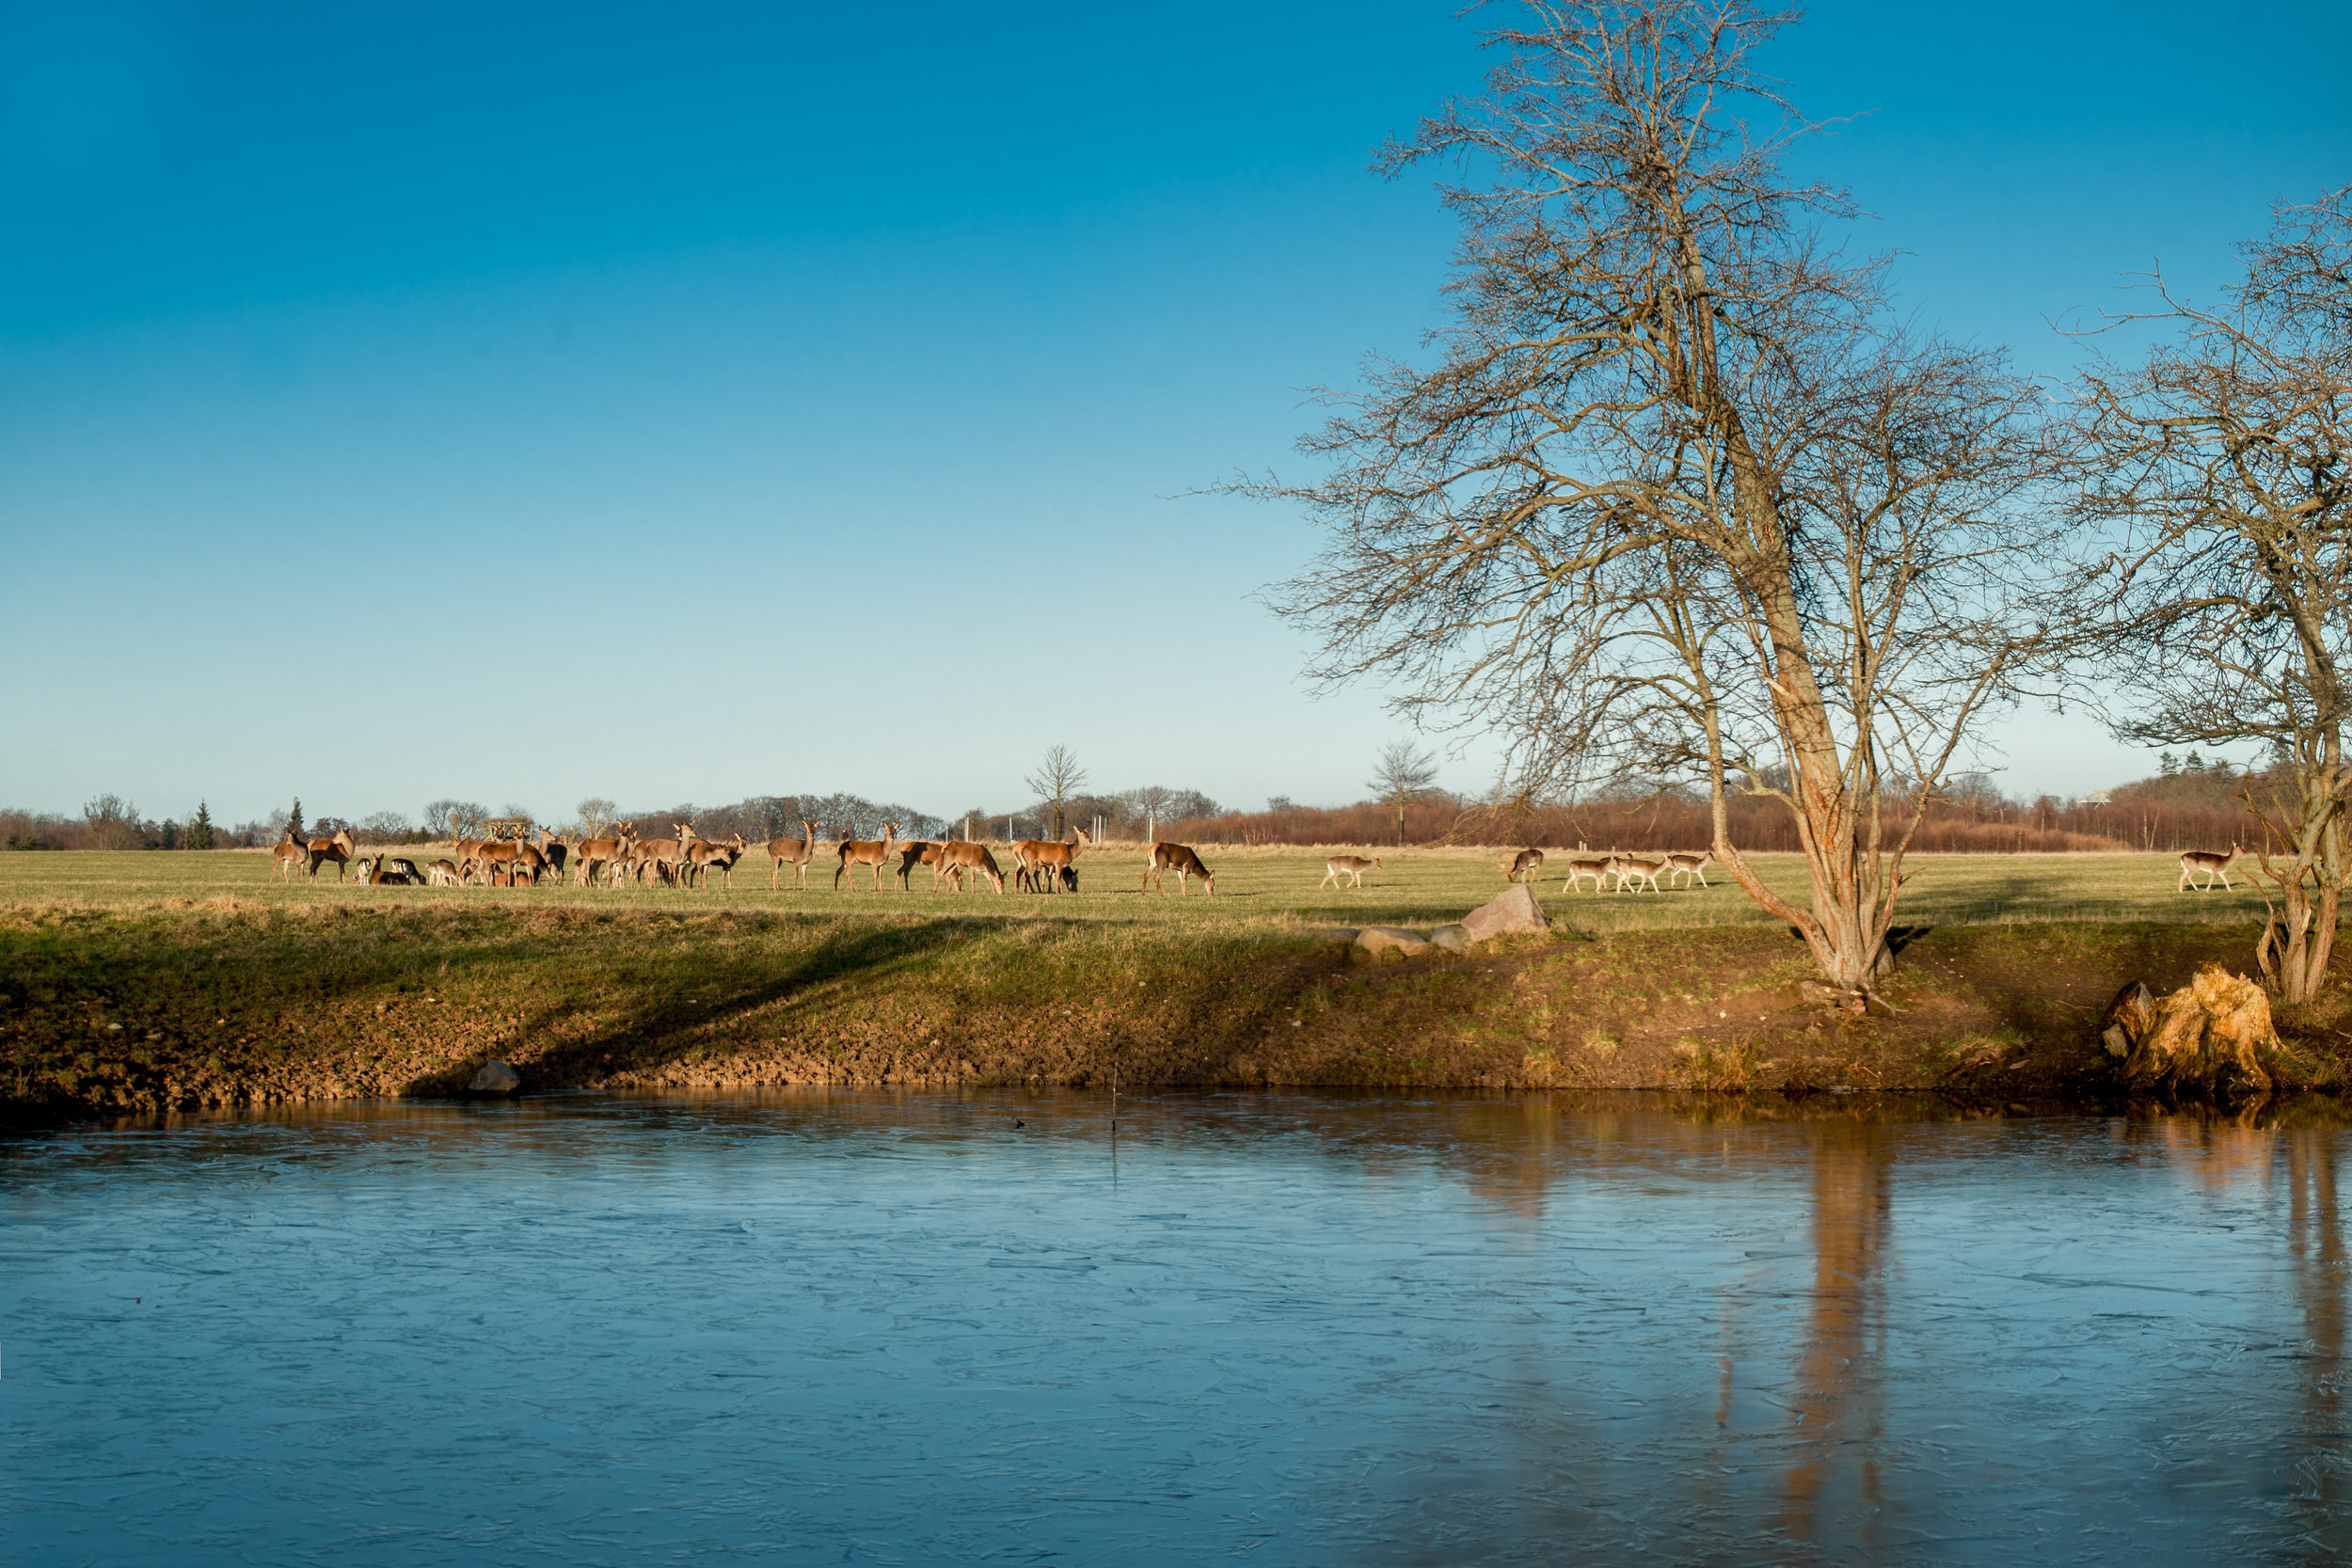 Zoomed in panorama of the deer and frozen lake. Nikon D200.